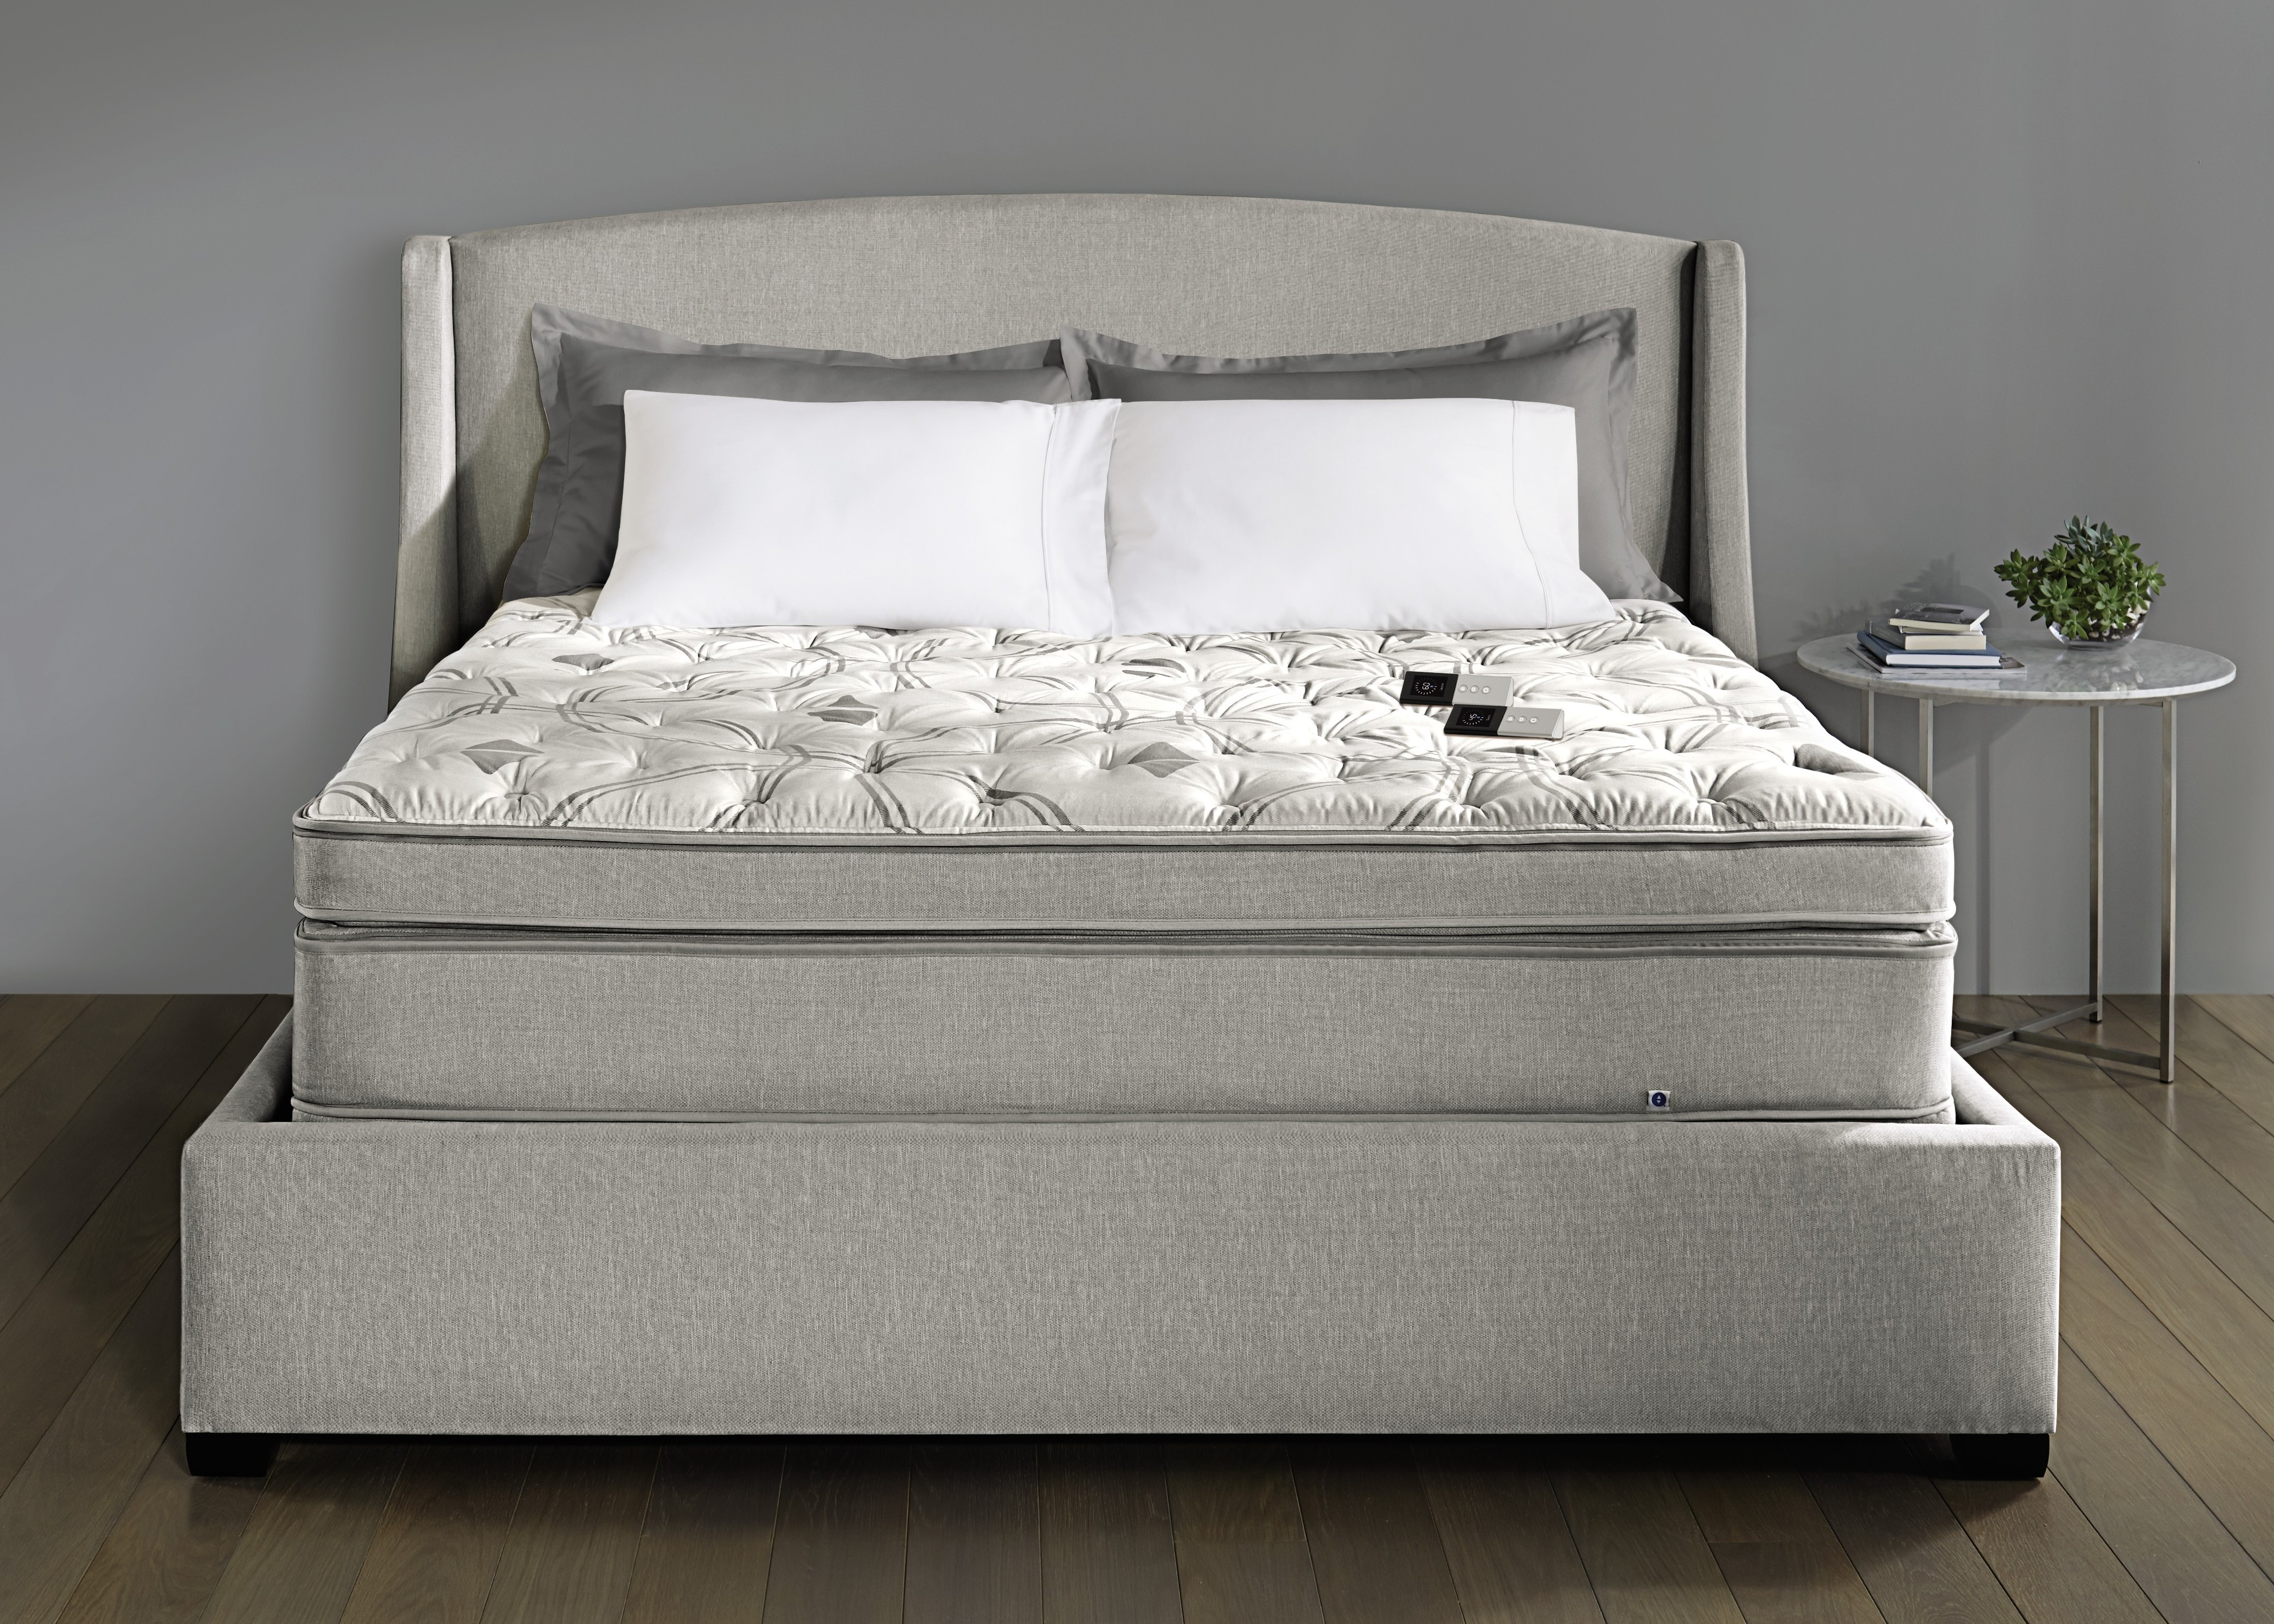 number pad size sleep king mattress of large bed select renaniatrust com reviews comfort